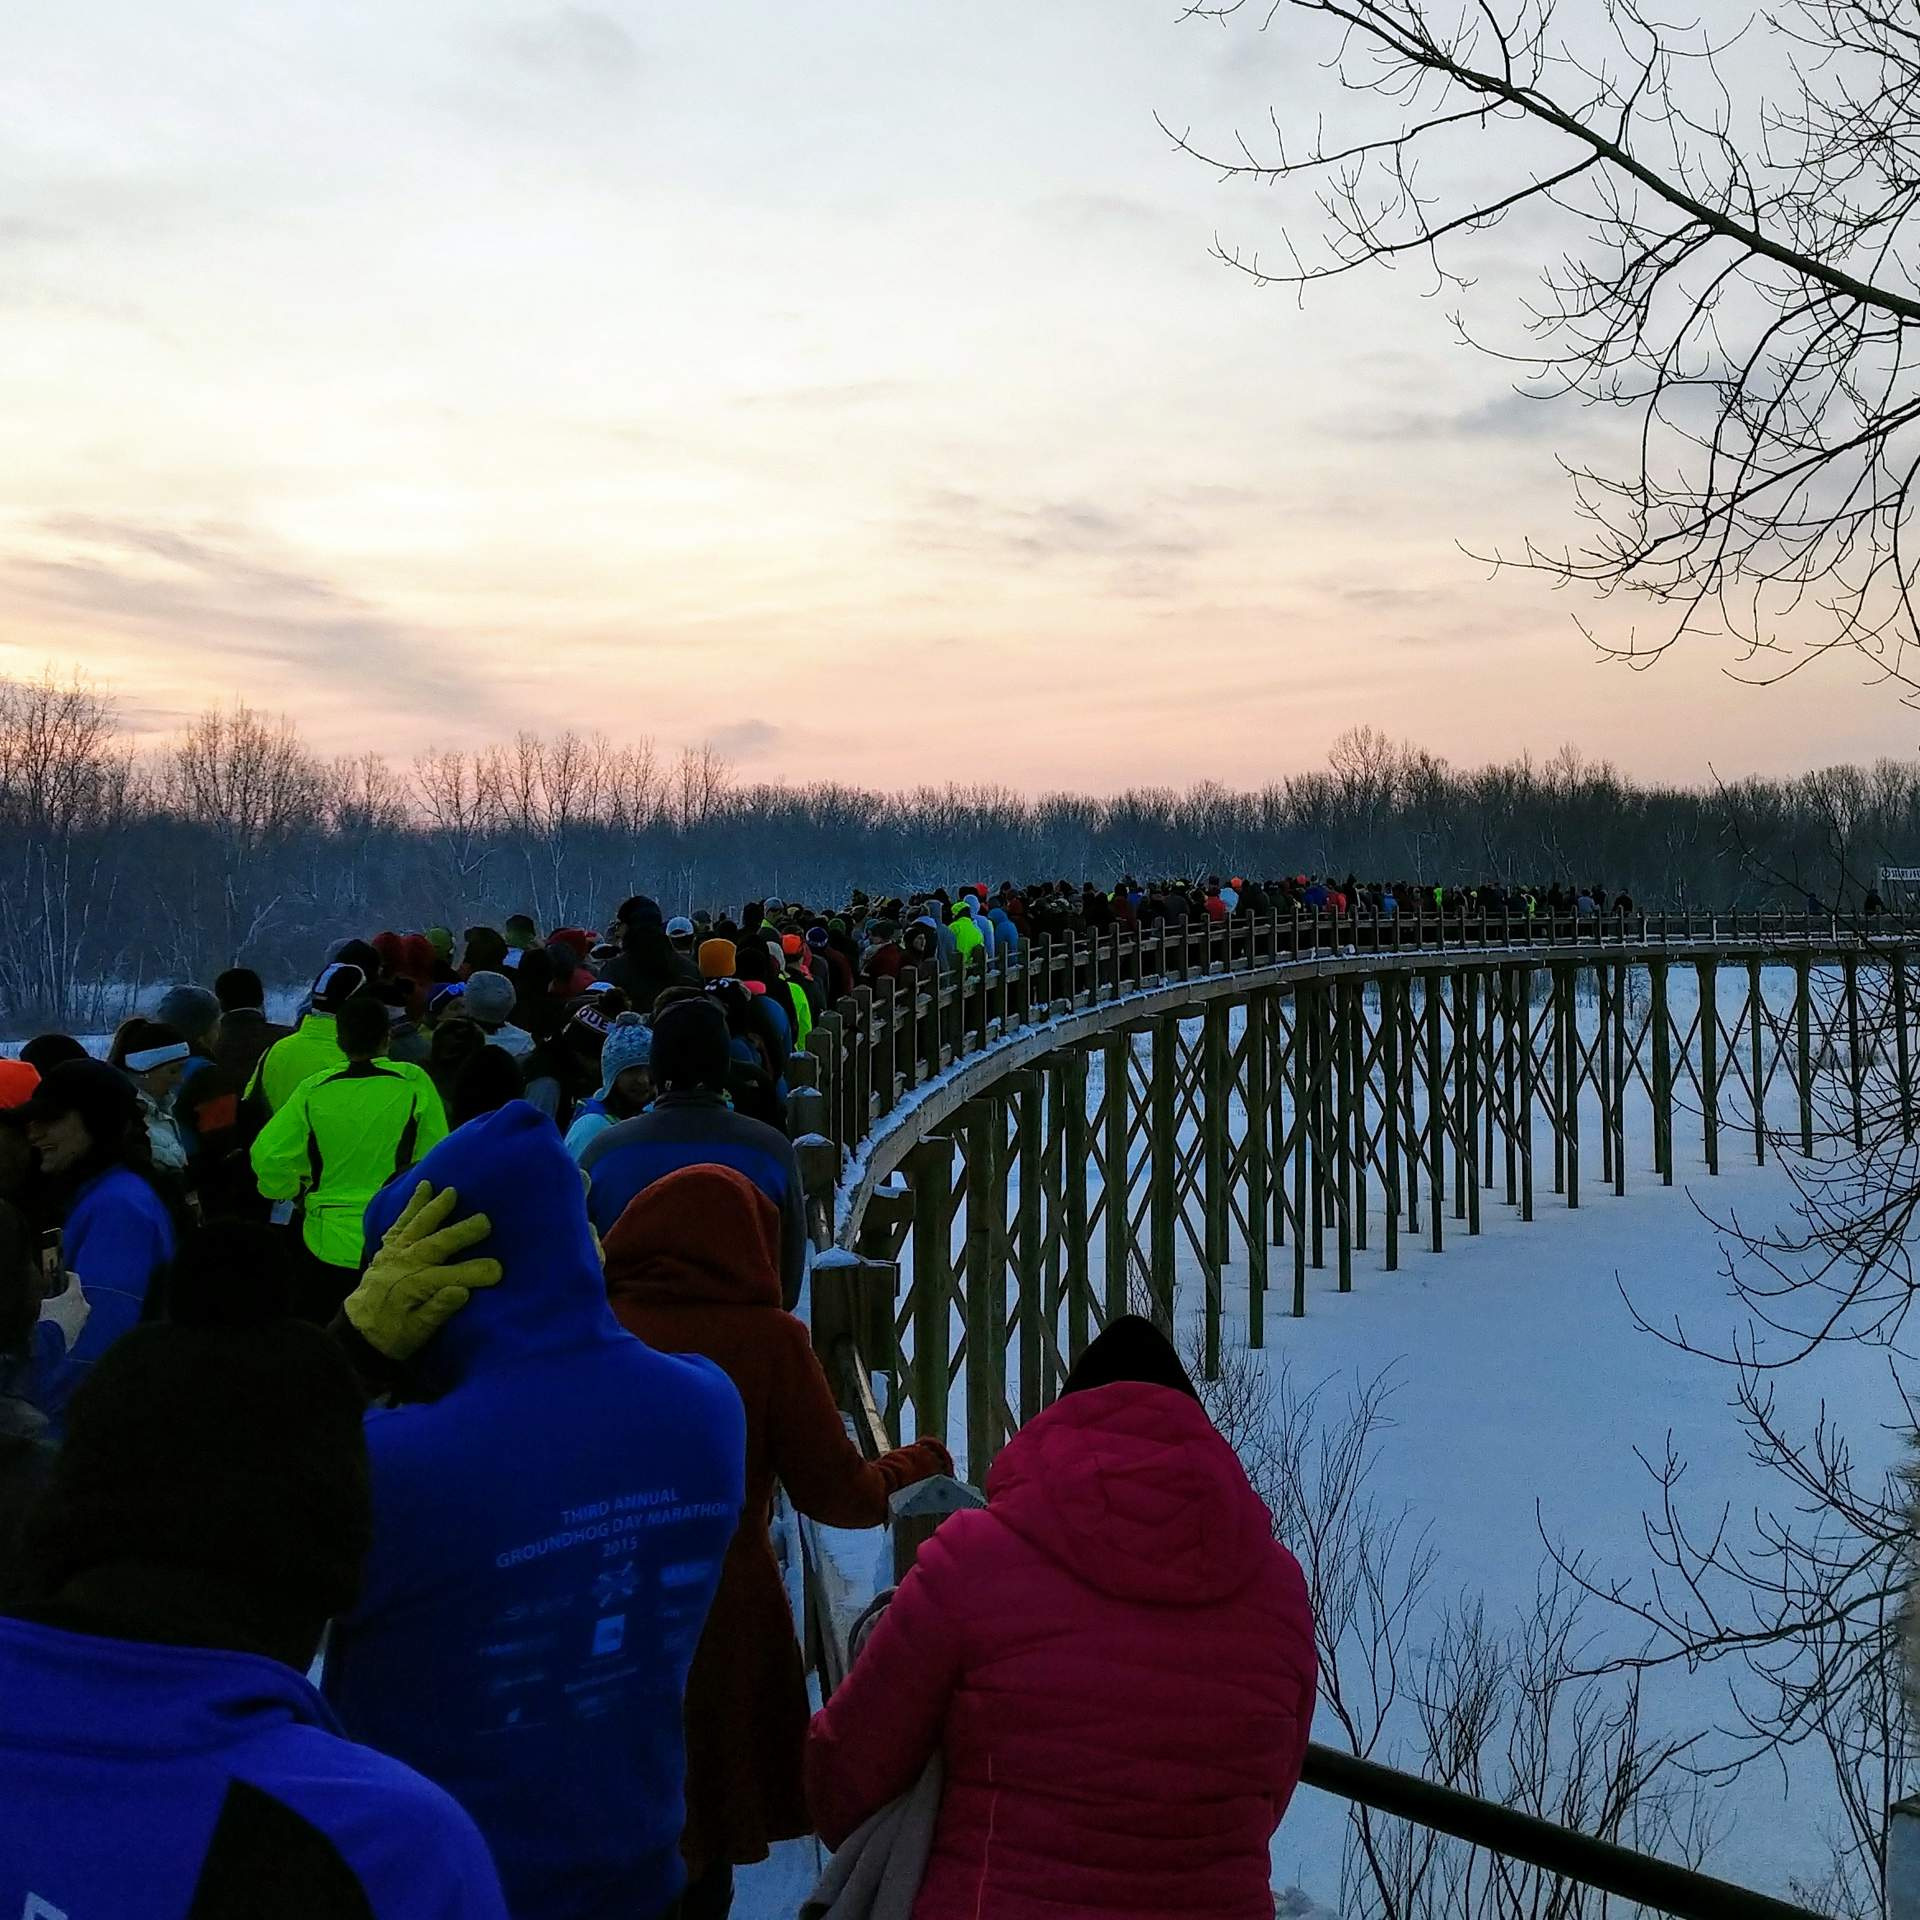 Lining up for the start of the 2019 Groundhog Day Marathon. I probably should have started closer to the front.